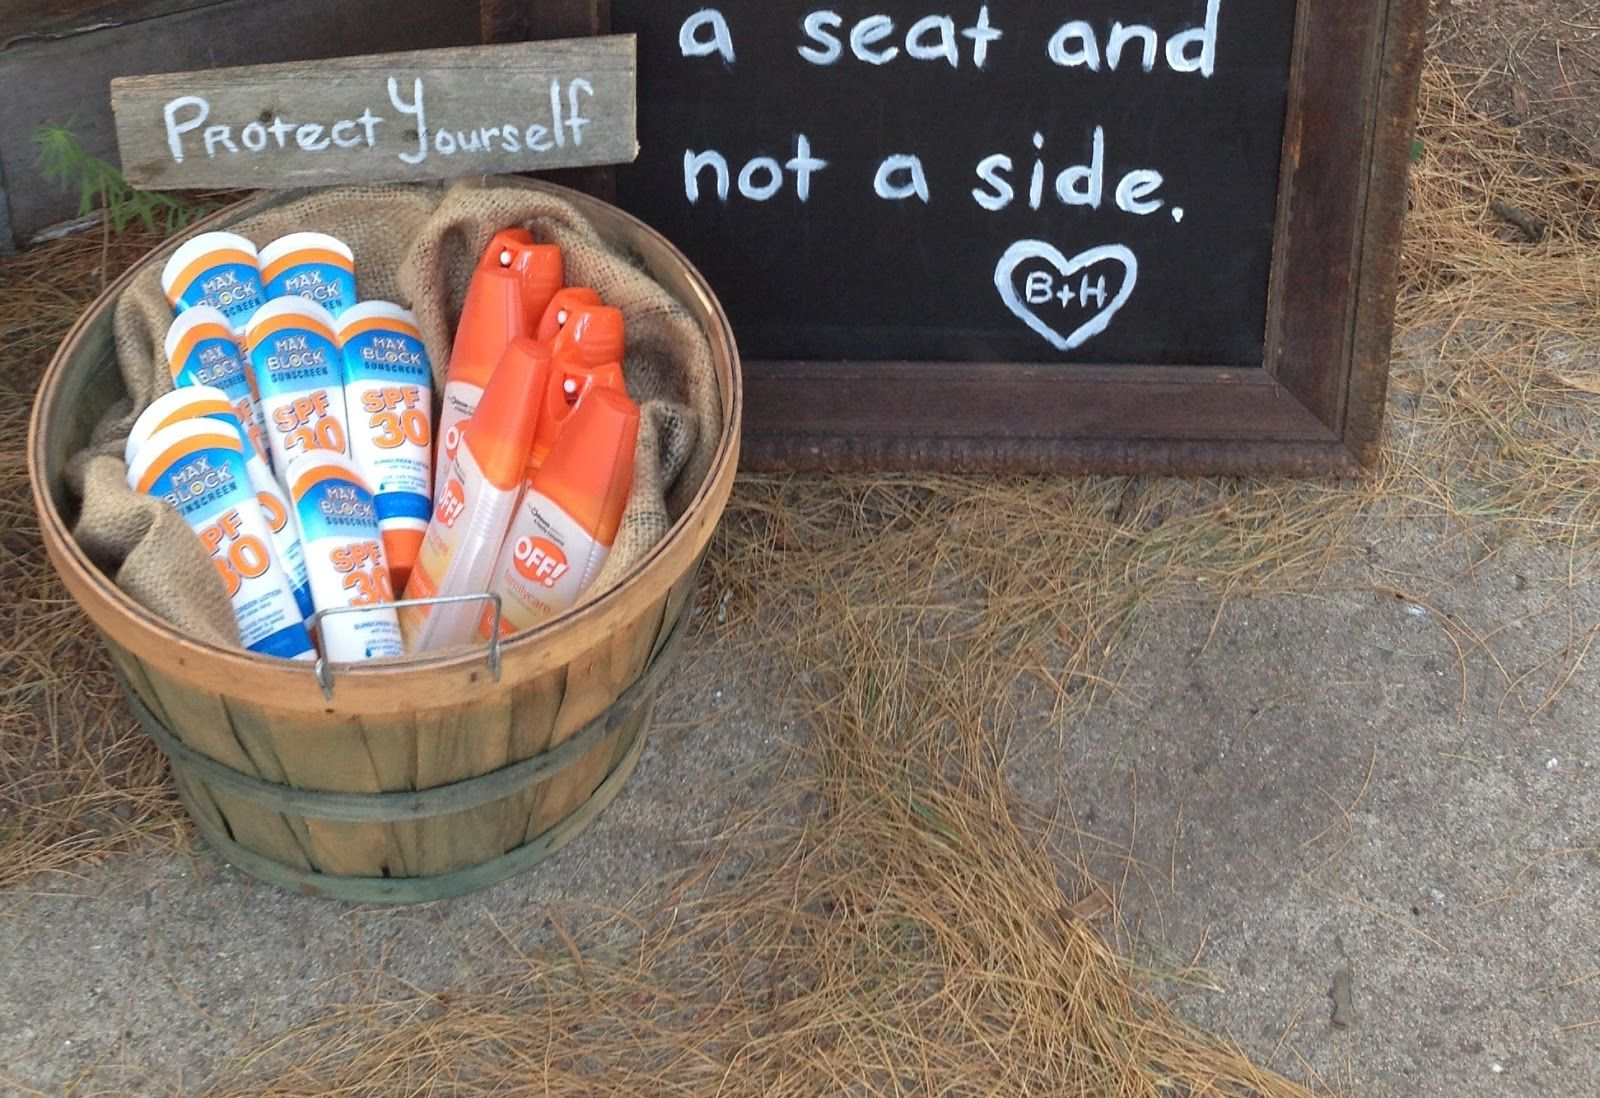 simple outdoor wedding ideas for summer%0A DIY wedding  bugspray and sunscreen basket for guests  wedding idea   rustic wedding